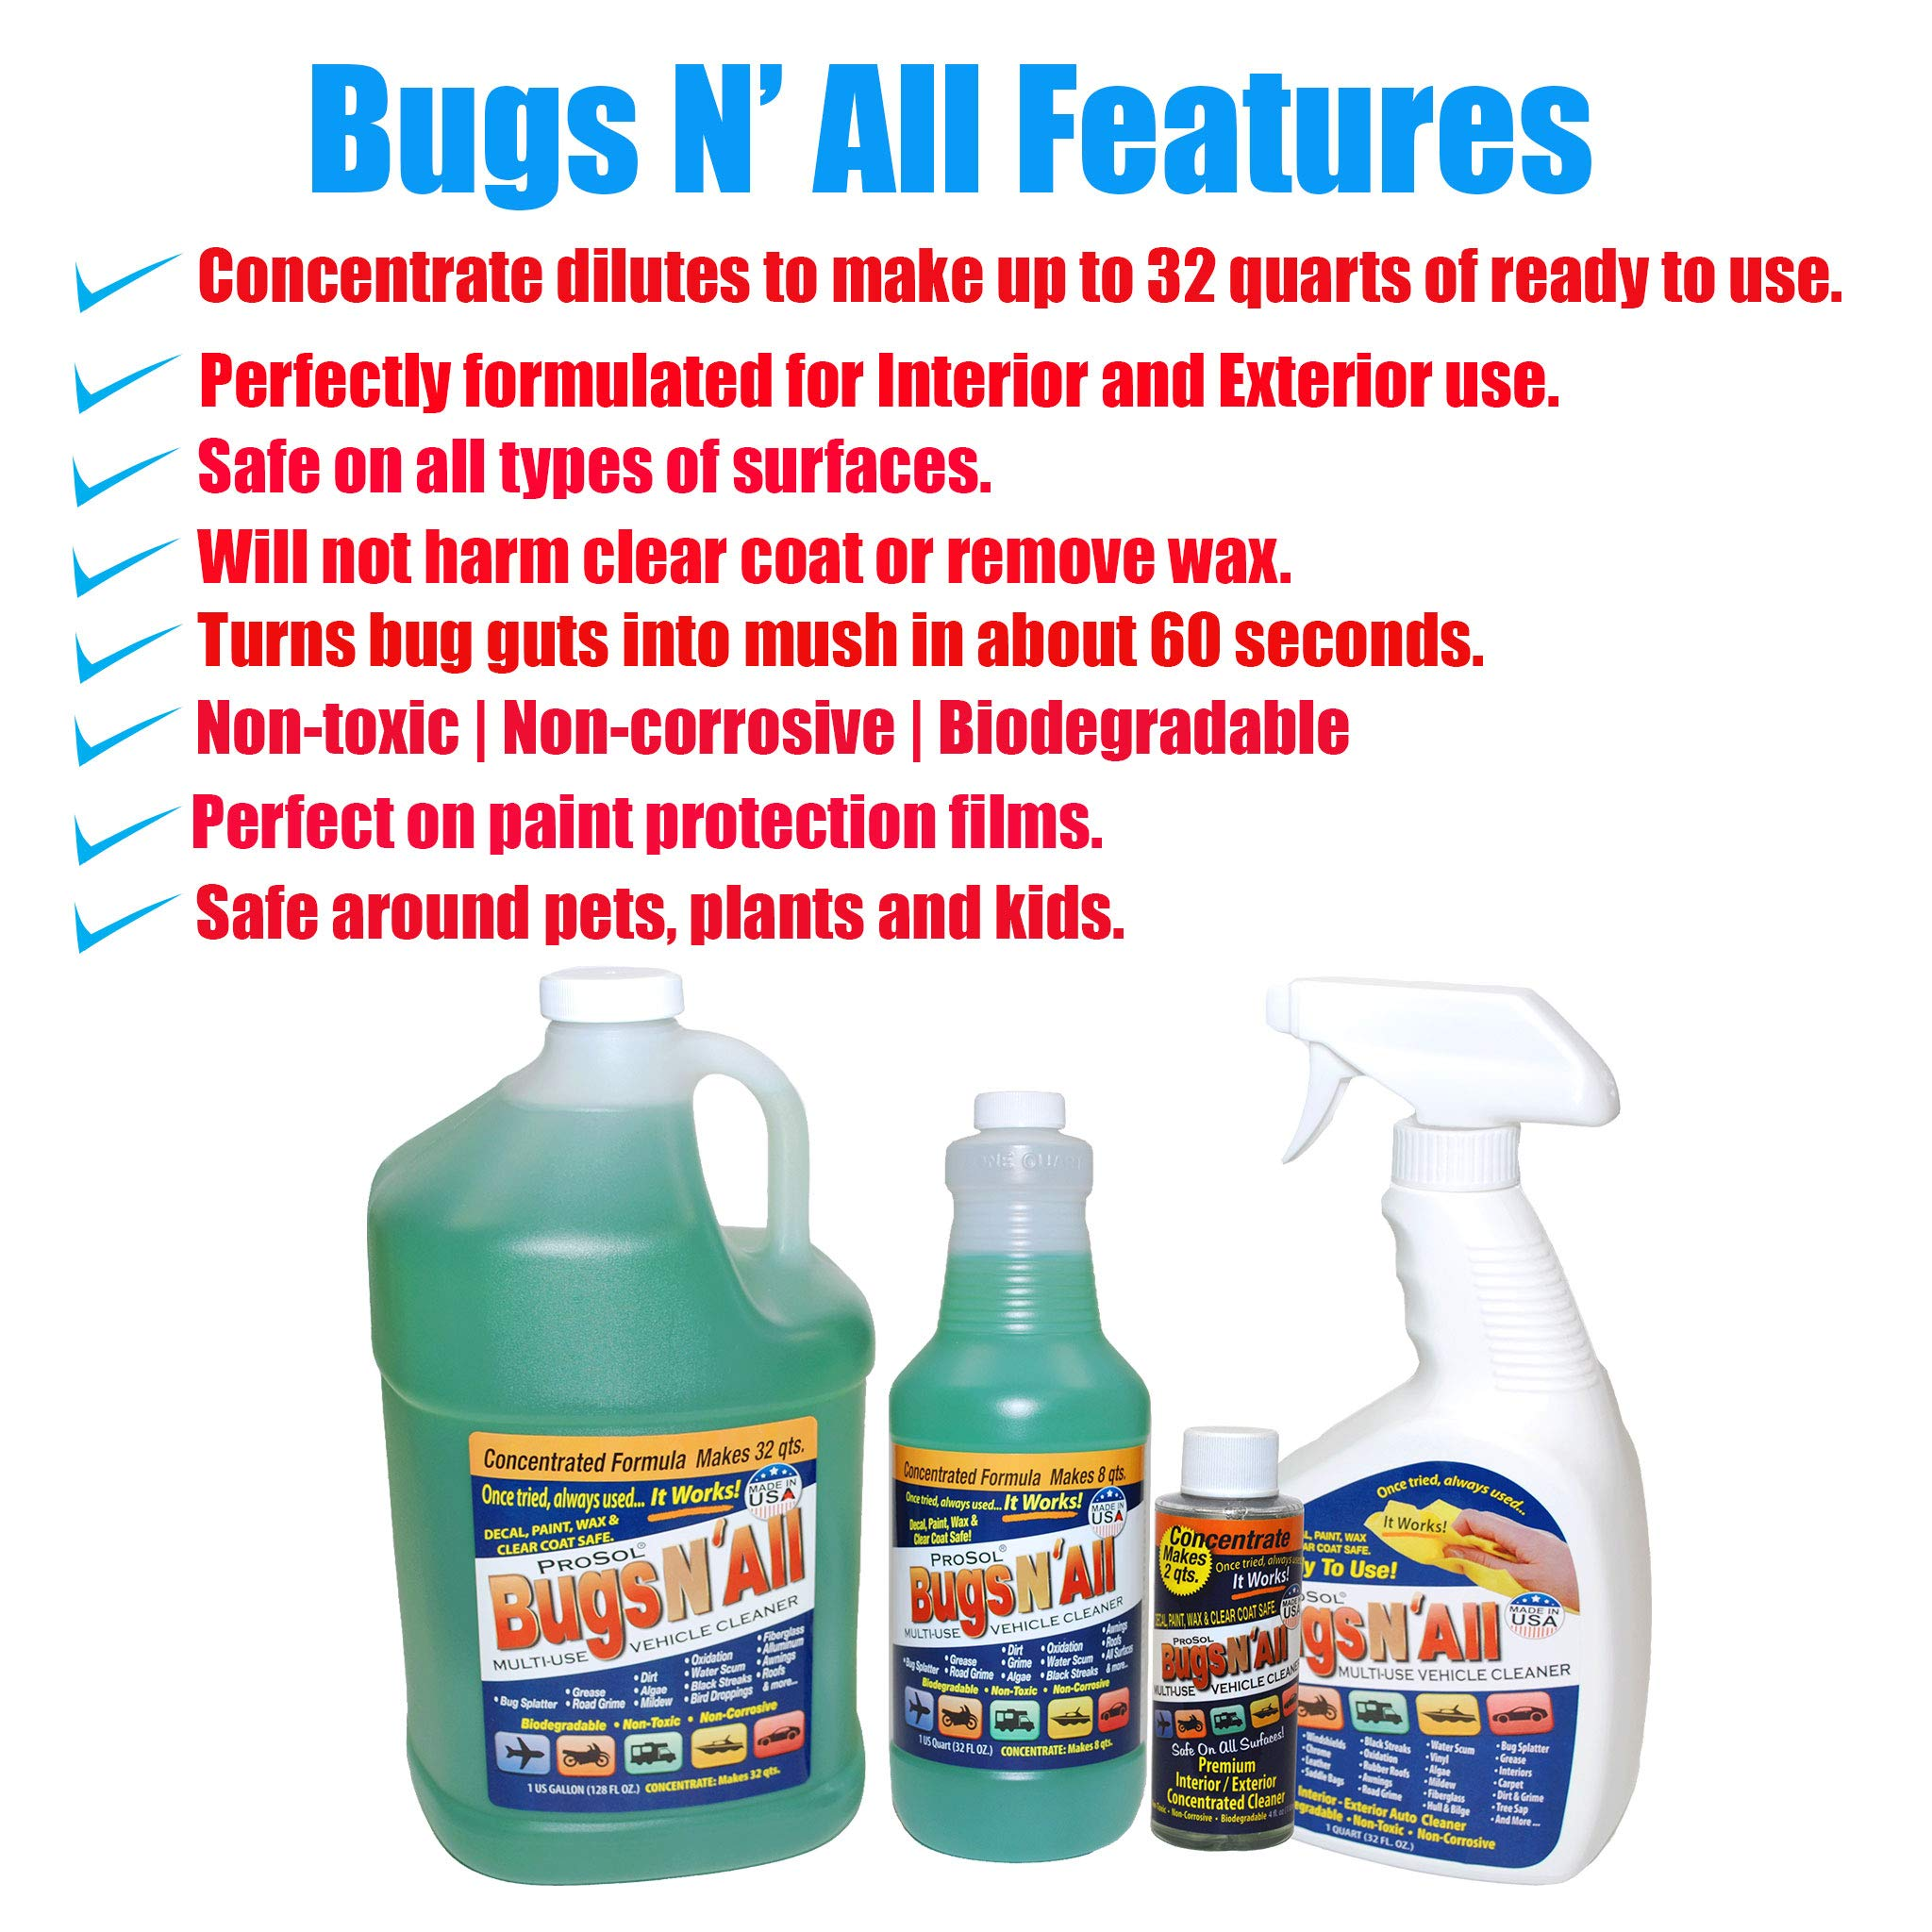 Bugs N All 1 Gal. Concentrate Makes 32 Qts. Pre-Wash Vehicle Cleaner - Bug Splatter and Black Streak Remover. Includes an Empty 32 oz. Spray Bottle - Will Not Remove Wax! by ProSol (Image #7)